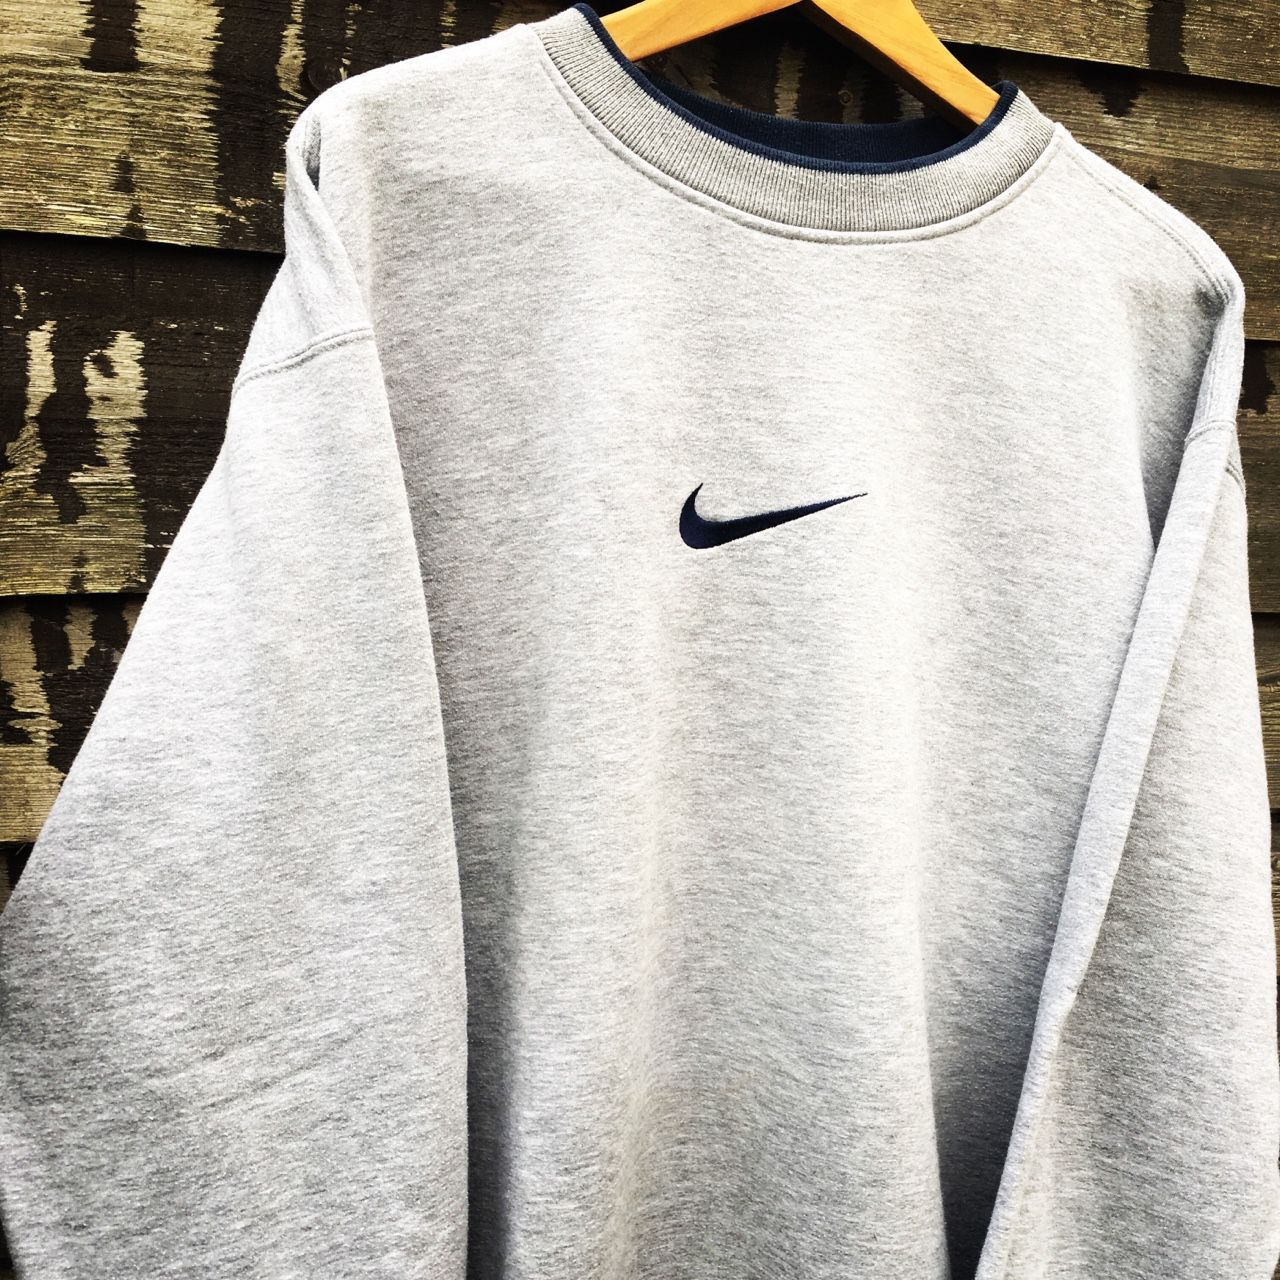 747a6cbe3 Retro Nike grey sweatshirt \ size XL (fits L-XL) \ condition 9/10 \ Nike  tick on middle of jumper! \ free postage #nike #jumper #vintage #plain